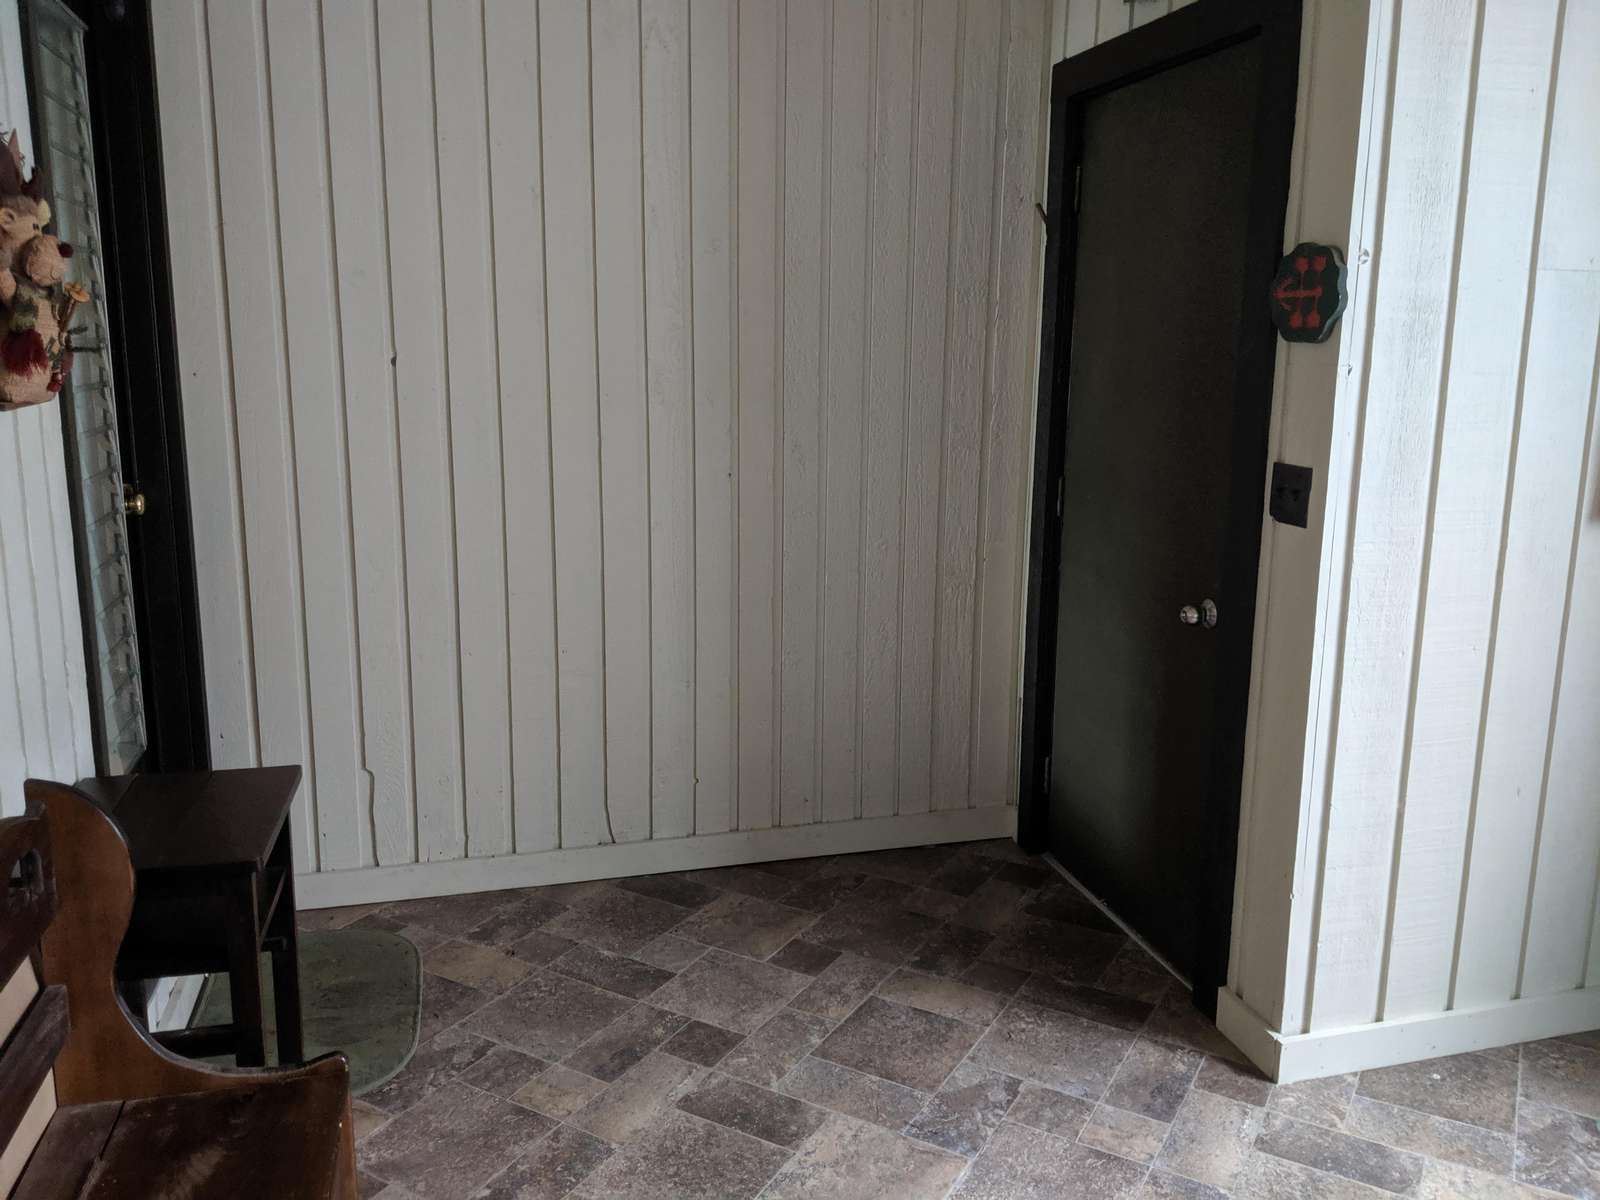 mudroom entrance, looking at outside door